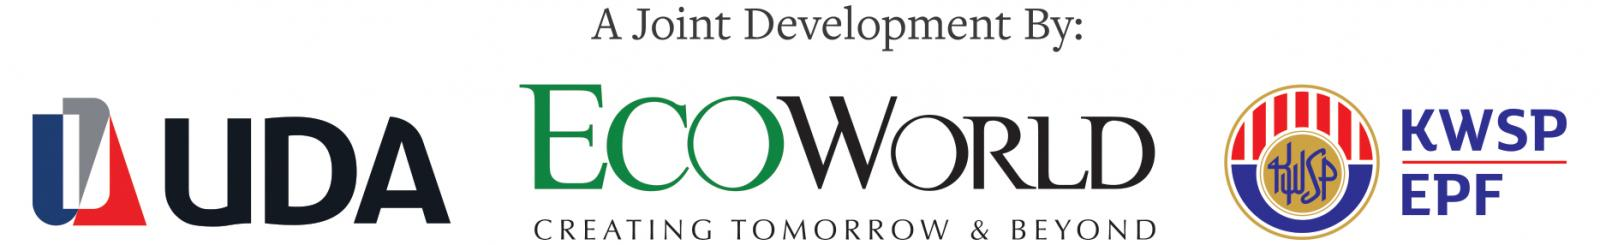 ecoword_jointdevelopment_01